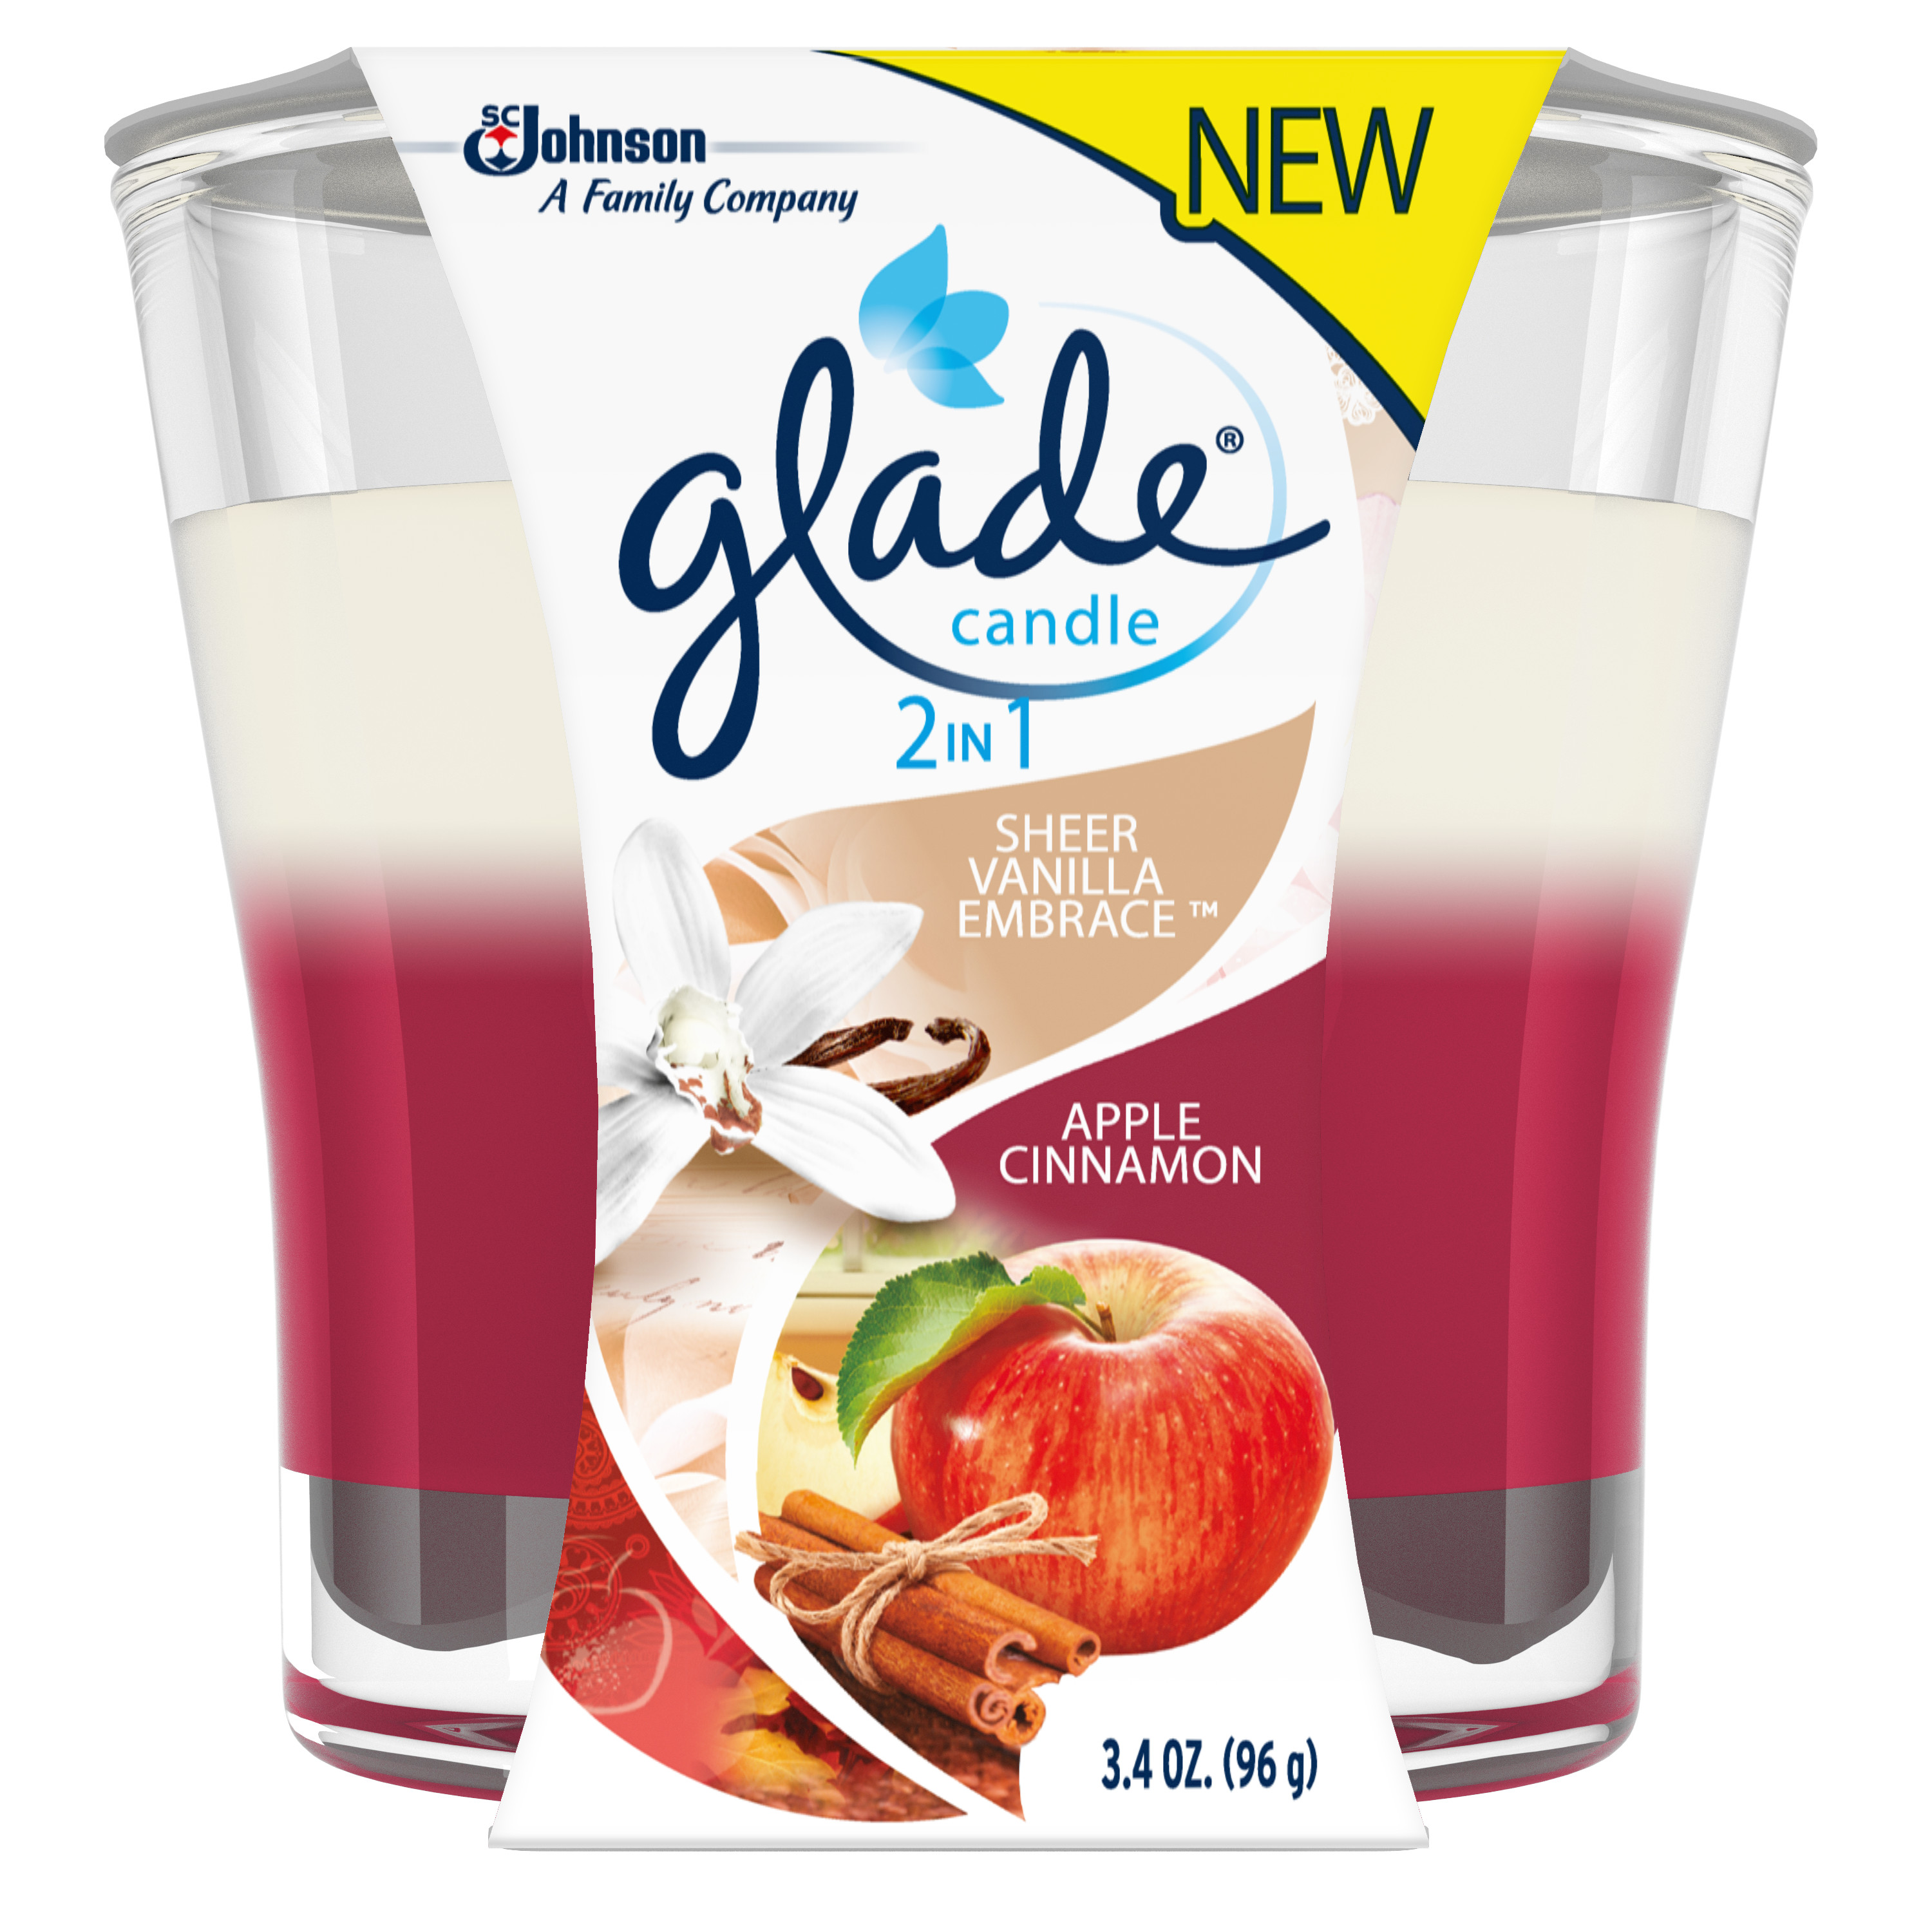 Glade Candle, 2 in 1: Creamy Custard & Apple Cinnamon, 3.4 oz. by SC Johnson